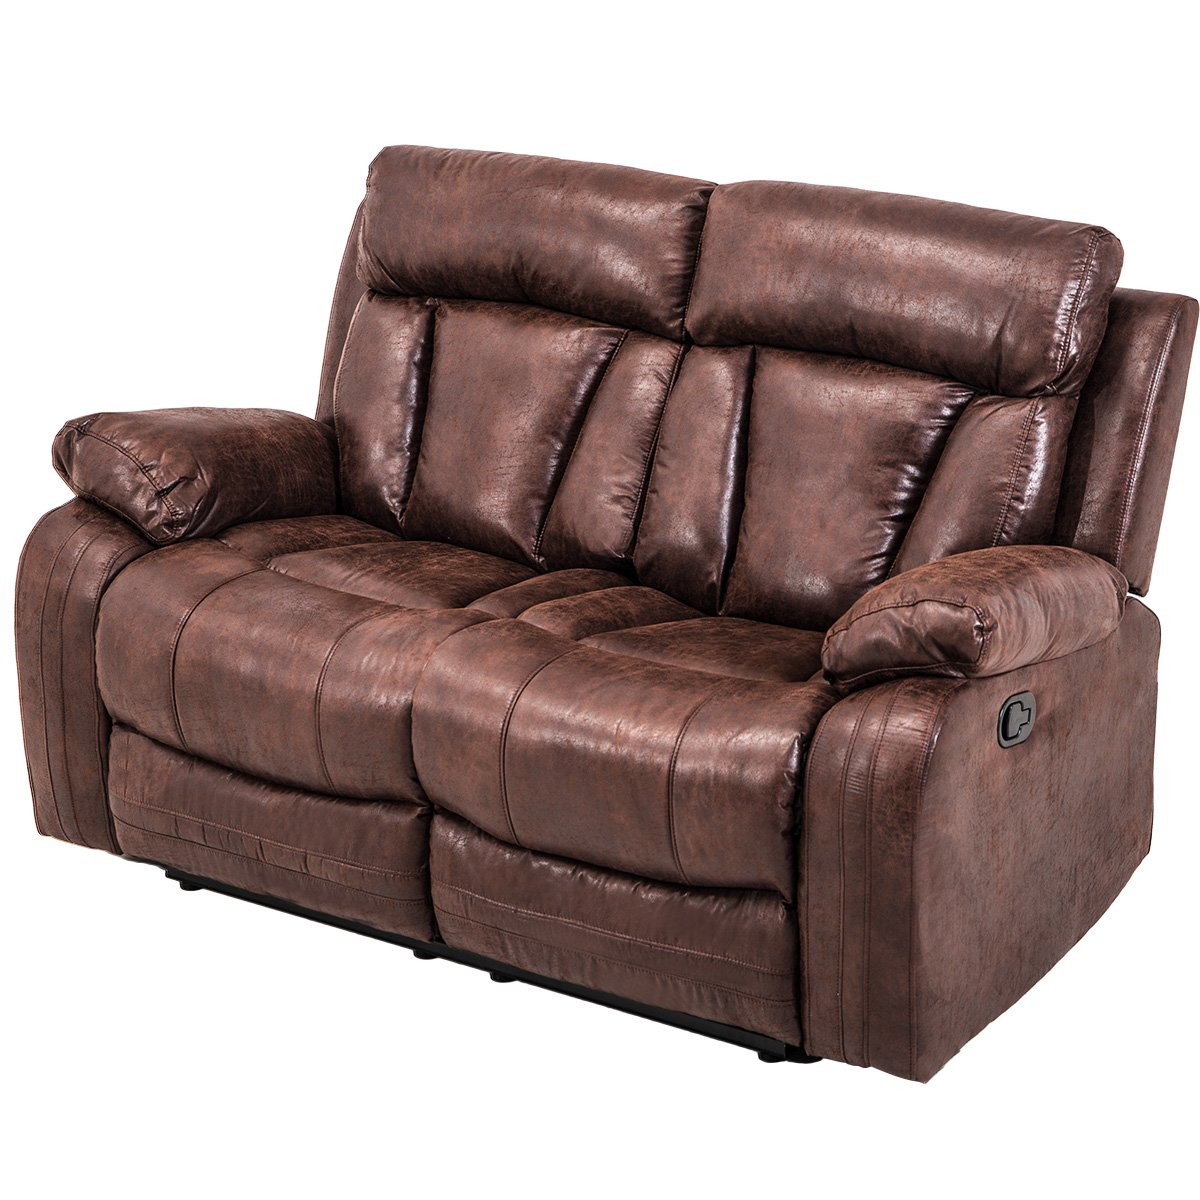 Hooseng, Sectional Loveseat Chaise Couch Sofa Leather Accent Chair Set Manual Recliner Motion for Living, Brown by Hooseng